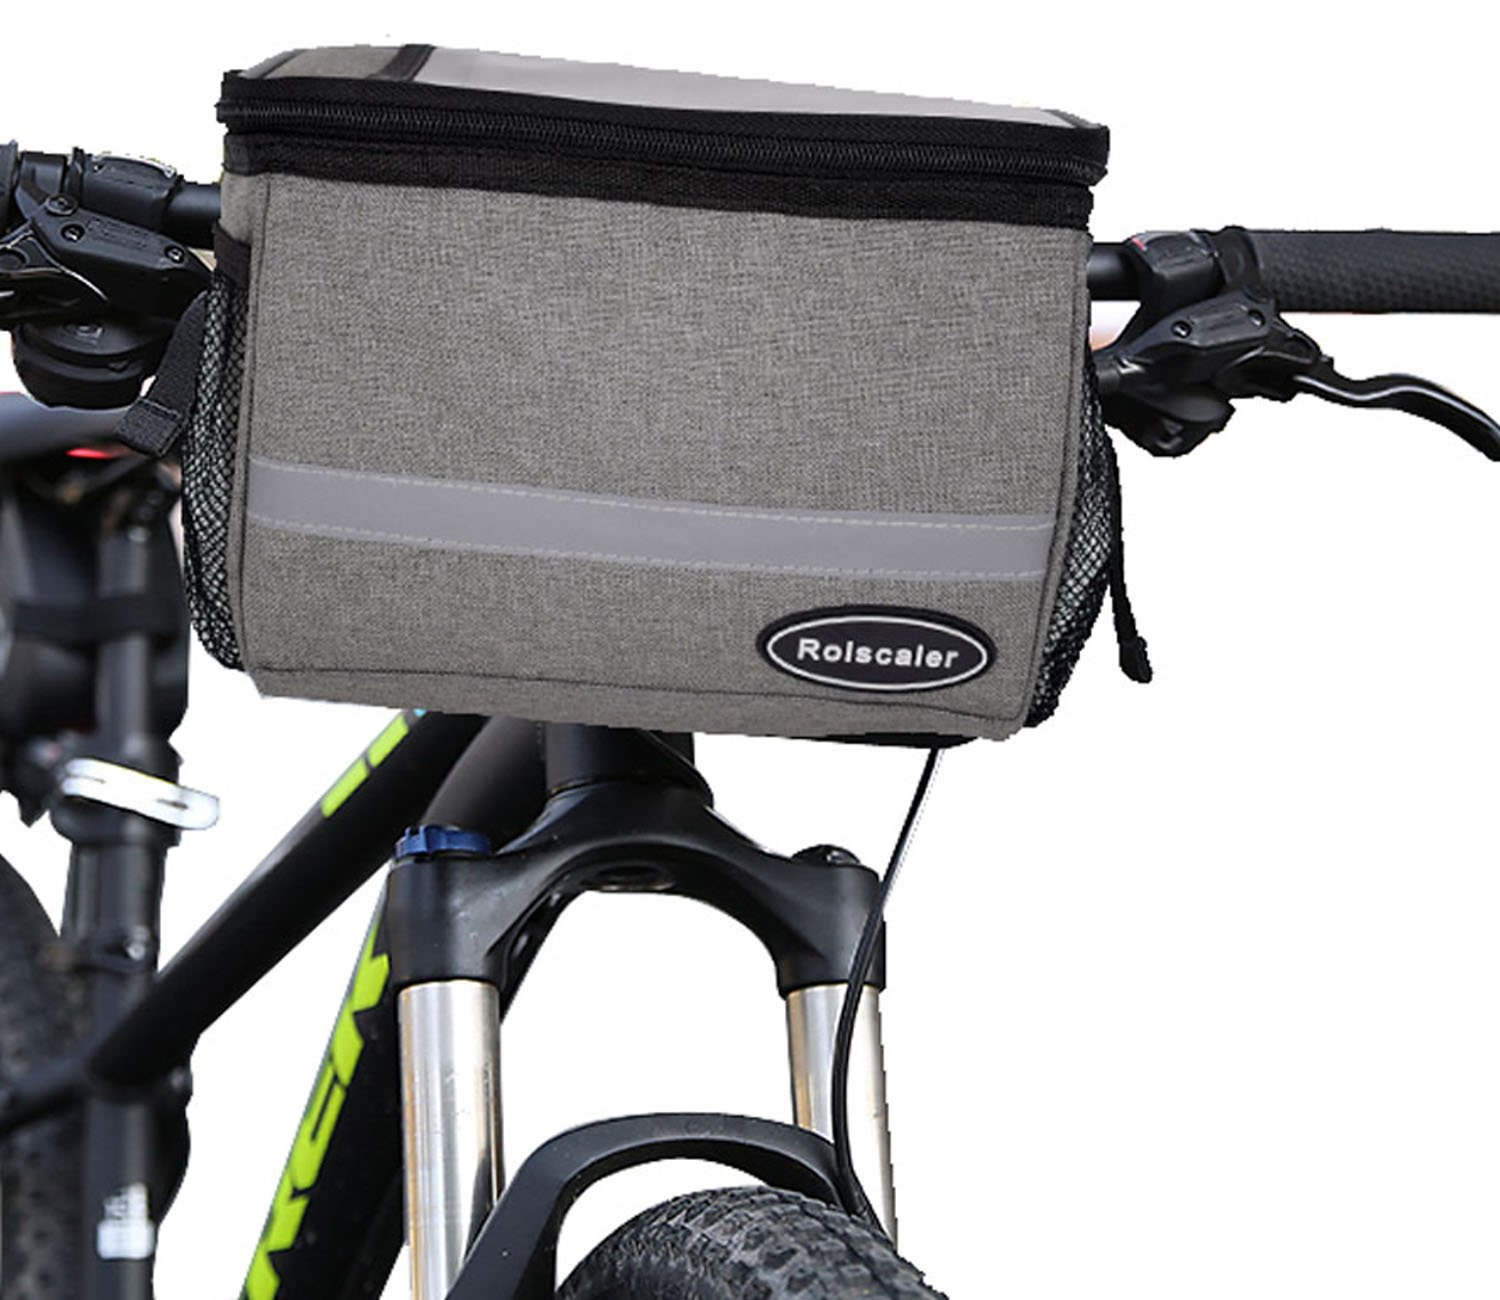 ROLSCALER 2 in 1 Bicycle Handlebar Bag with Insulation Function and Sliver Grey Reflective Stripe Outdoor Bike Pack Accessories